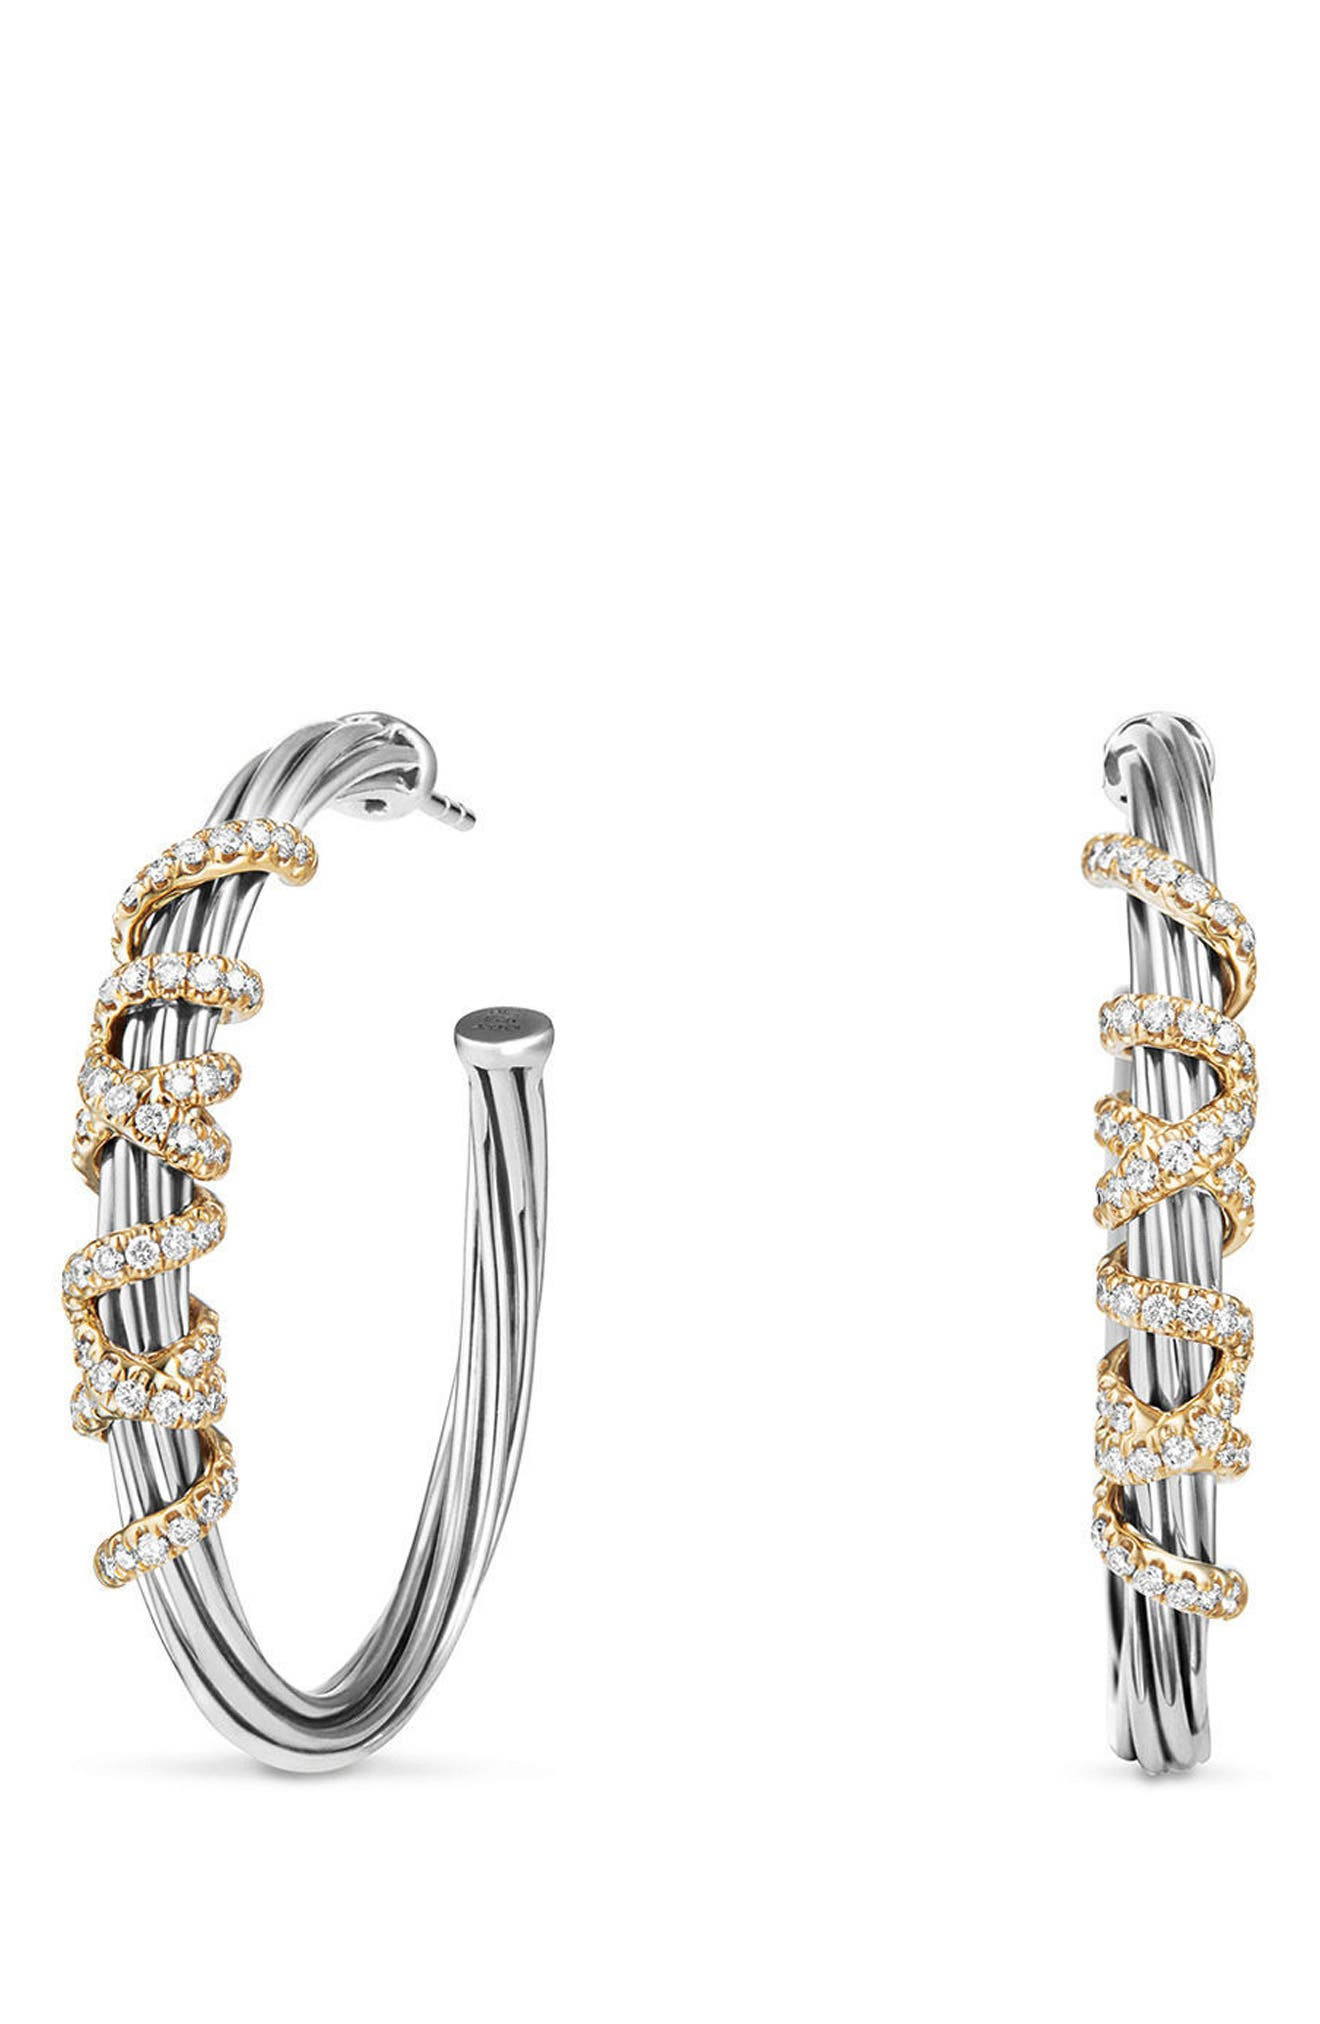 Helena Large Hoop Earrings with Diamonds & 18K Gold,                         Main,                         color, SILVER/ GOLD